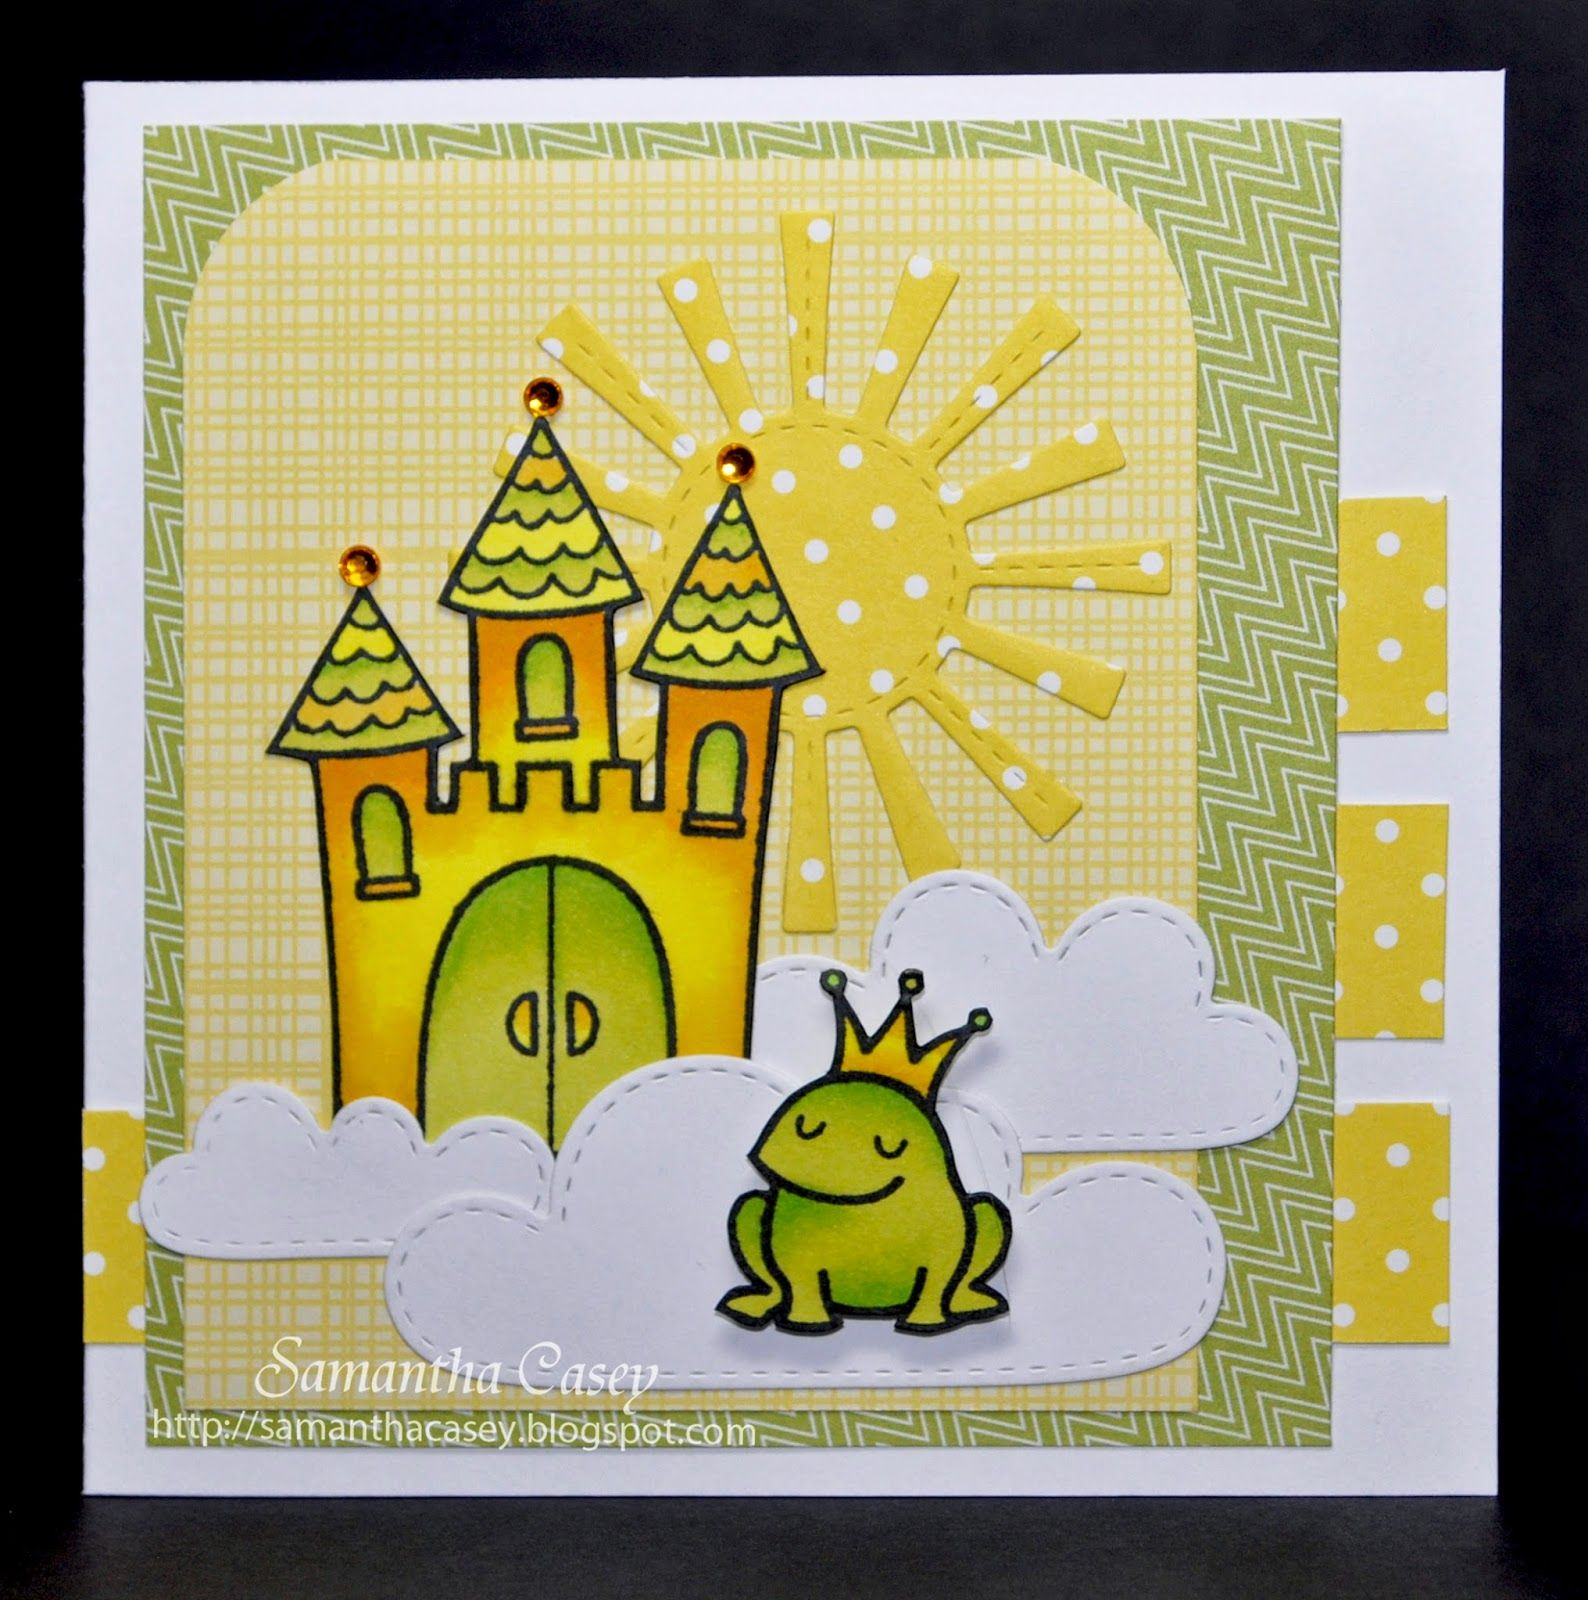 Lawnscaping March Blog Hop is part of lawn Fawn Pink Lemonade - Hey everyone, I am so excited for this Lawnscaping March blog hop! If you came from Tracy's blog you are in the right spot  Yellow and green is such a fun color combination, it reminds me of spring and sunshine  I love the  Critters Ever After  stamp set, and just had to use the frog and castle for my card  I created a colorful magical scene that combines both the  Critters Ever After  stamp set and the  Spring Showers  craft die set  The stitched clouds and sun are just adorable! The papers from the  Pink Lemonade  petite paper pack worked perfectly with my color theme  Lawn Fawn Supplies Critters Ever After Pink Lemonade Petite Paper Pack Spring Showers Spectrum Noir is the sponsor of our blog hop  Leave a comment on the Lawnscaping blog in addition to all of the designer's blogs  The winner will be chosen from the comments! Good luck! Blog Hop Order Lawnscaping Blog Samantha M  Tracy Samantha C  Sabine Lizzy Kari Lenny Thank you so much for stopping by, please hop on over to Sabine's blog! I hope you have a great day!